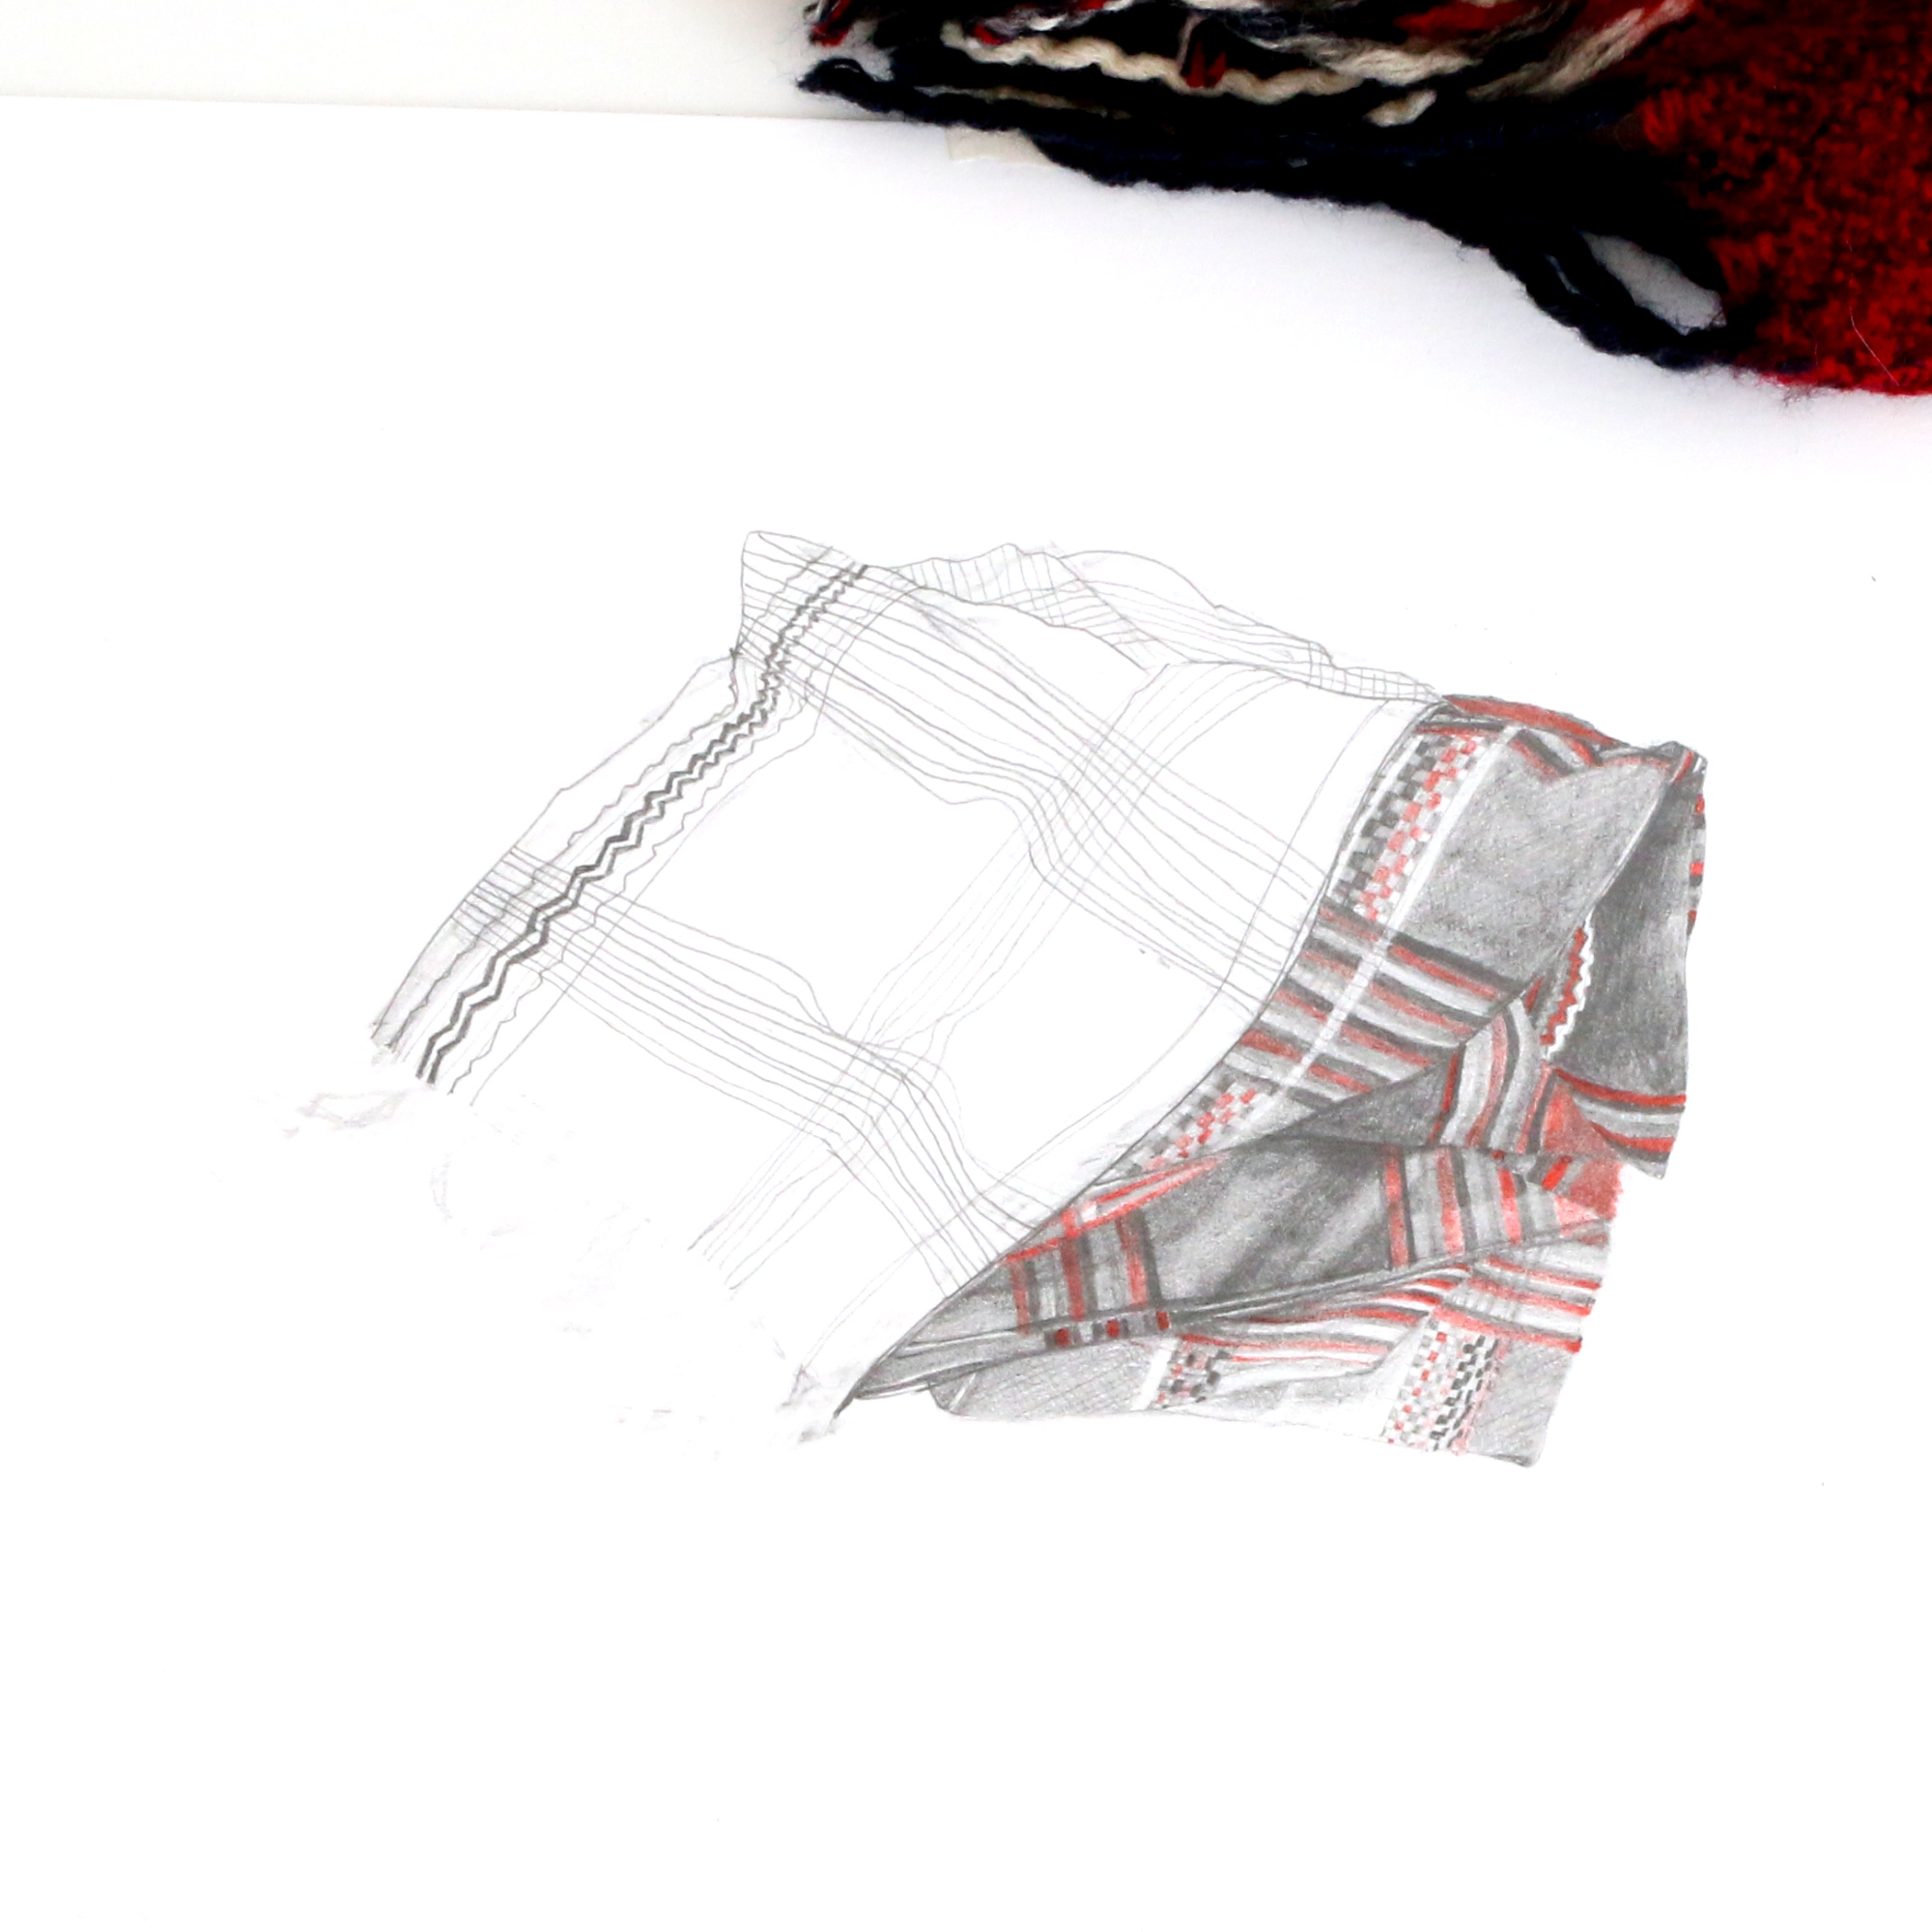 Sketch of the scarf, with patterns and coloured pencil |  So Ready for Autumn , by The Daily Atelier